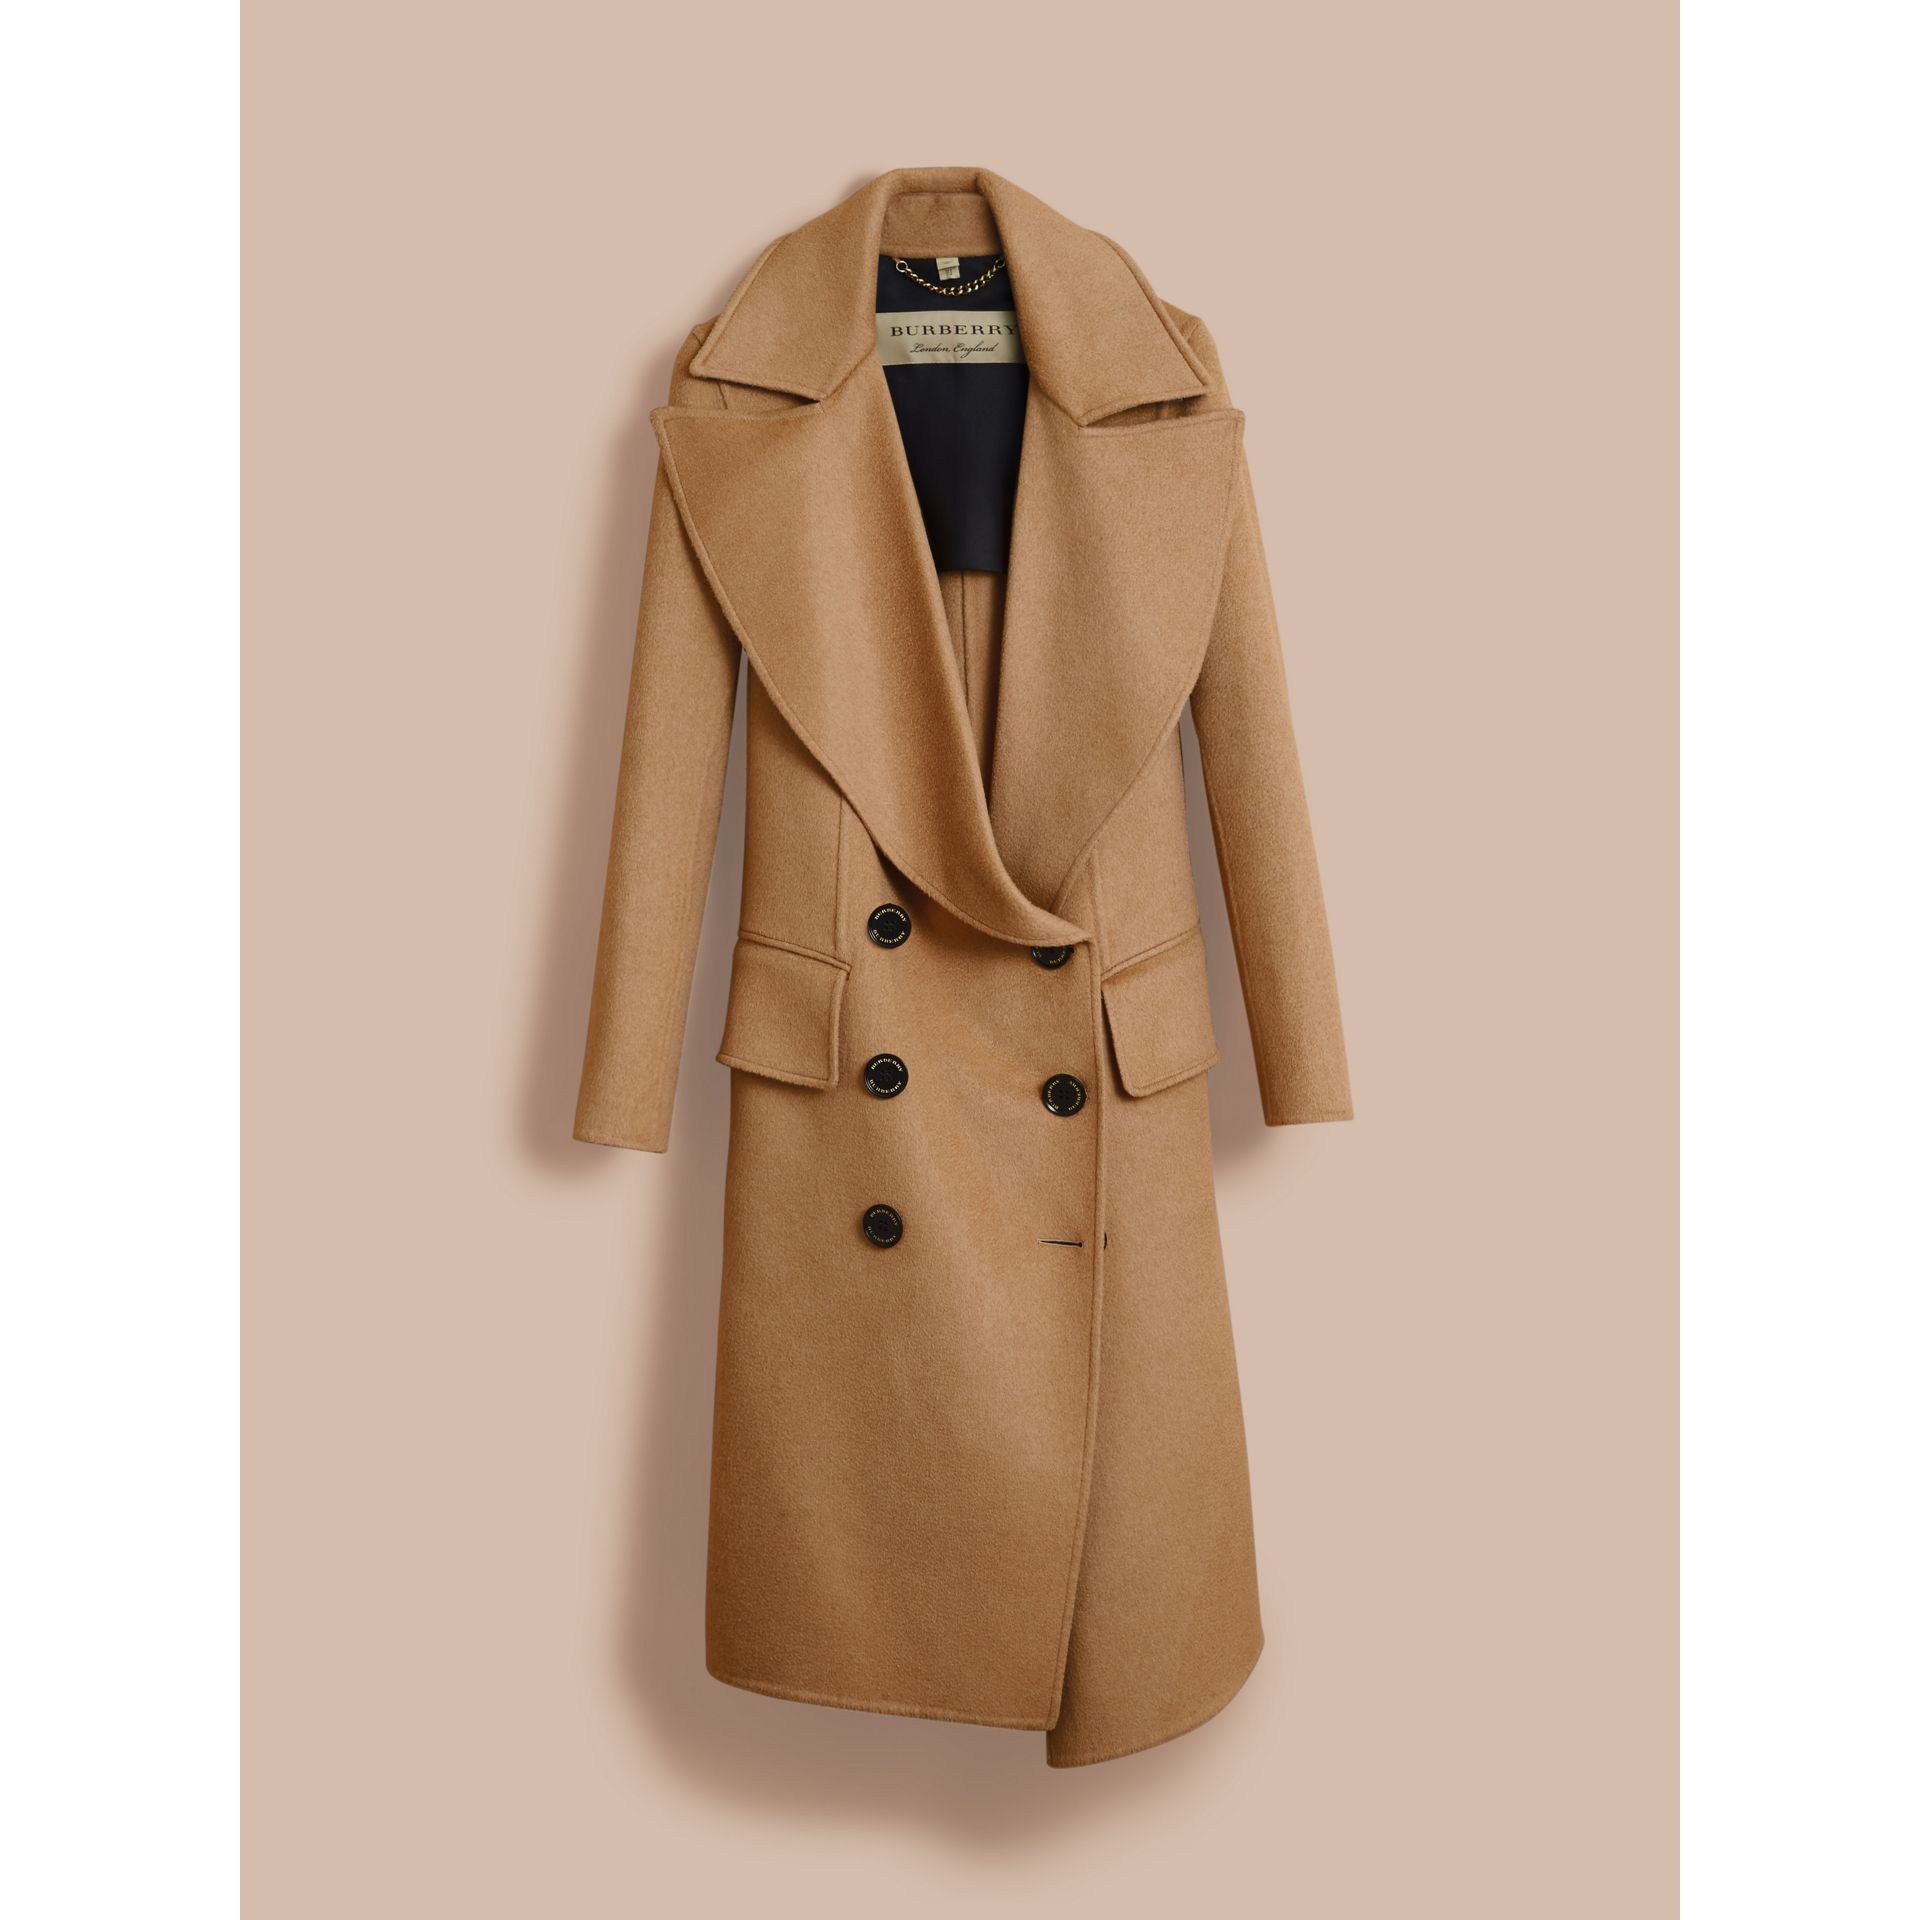 Draped Front Camel Hair and Wool Tailored Coat - Women | Burberry - gallery image 4